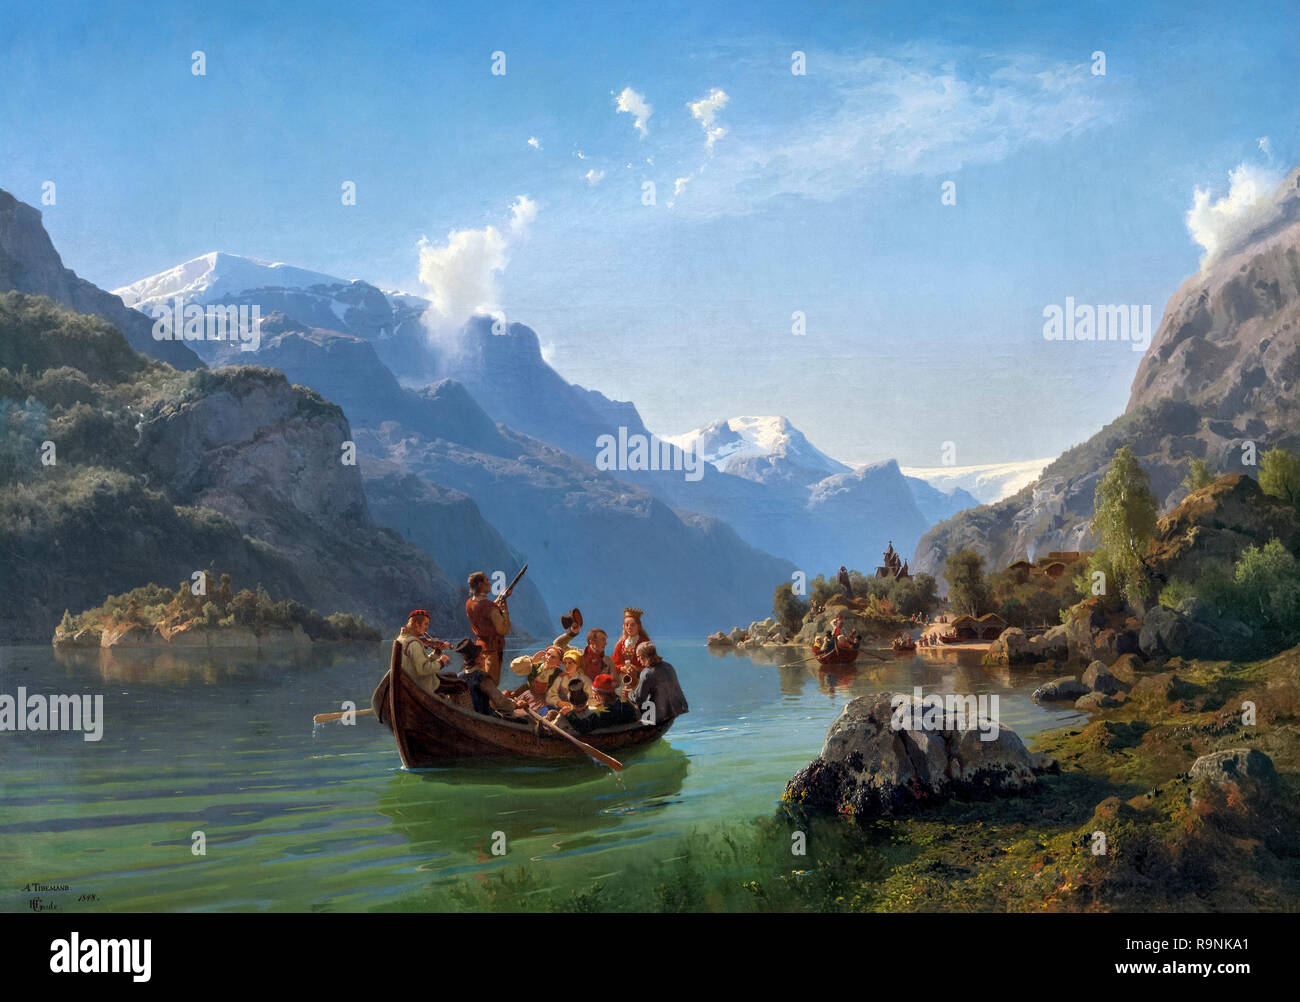 Bridal Procession on the Hardangerfjord by Hans Gude 1825-1903) and Adolph Tidemand (1814-1876), oil on canvas, 1848 - Stock Image